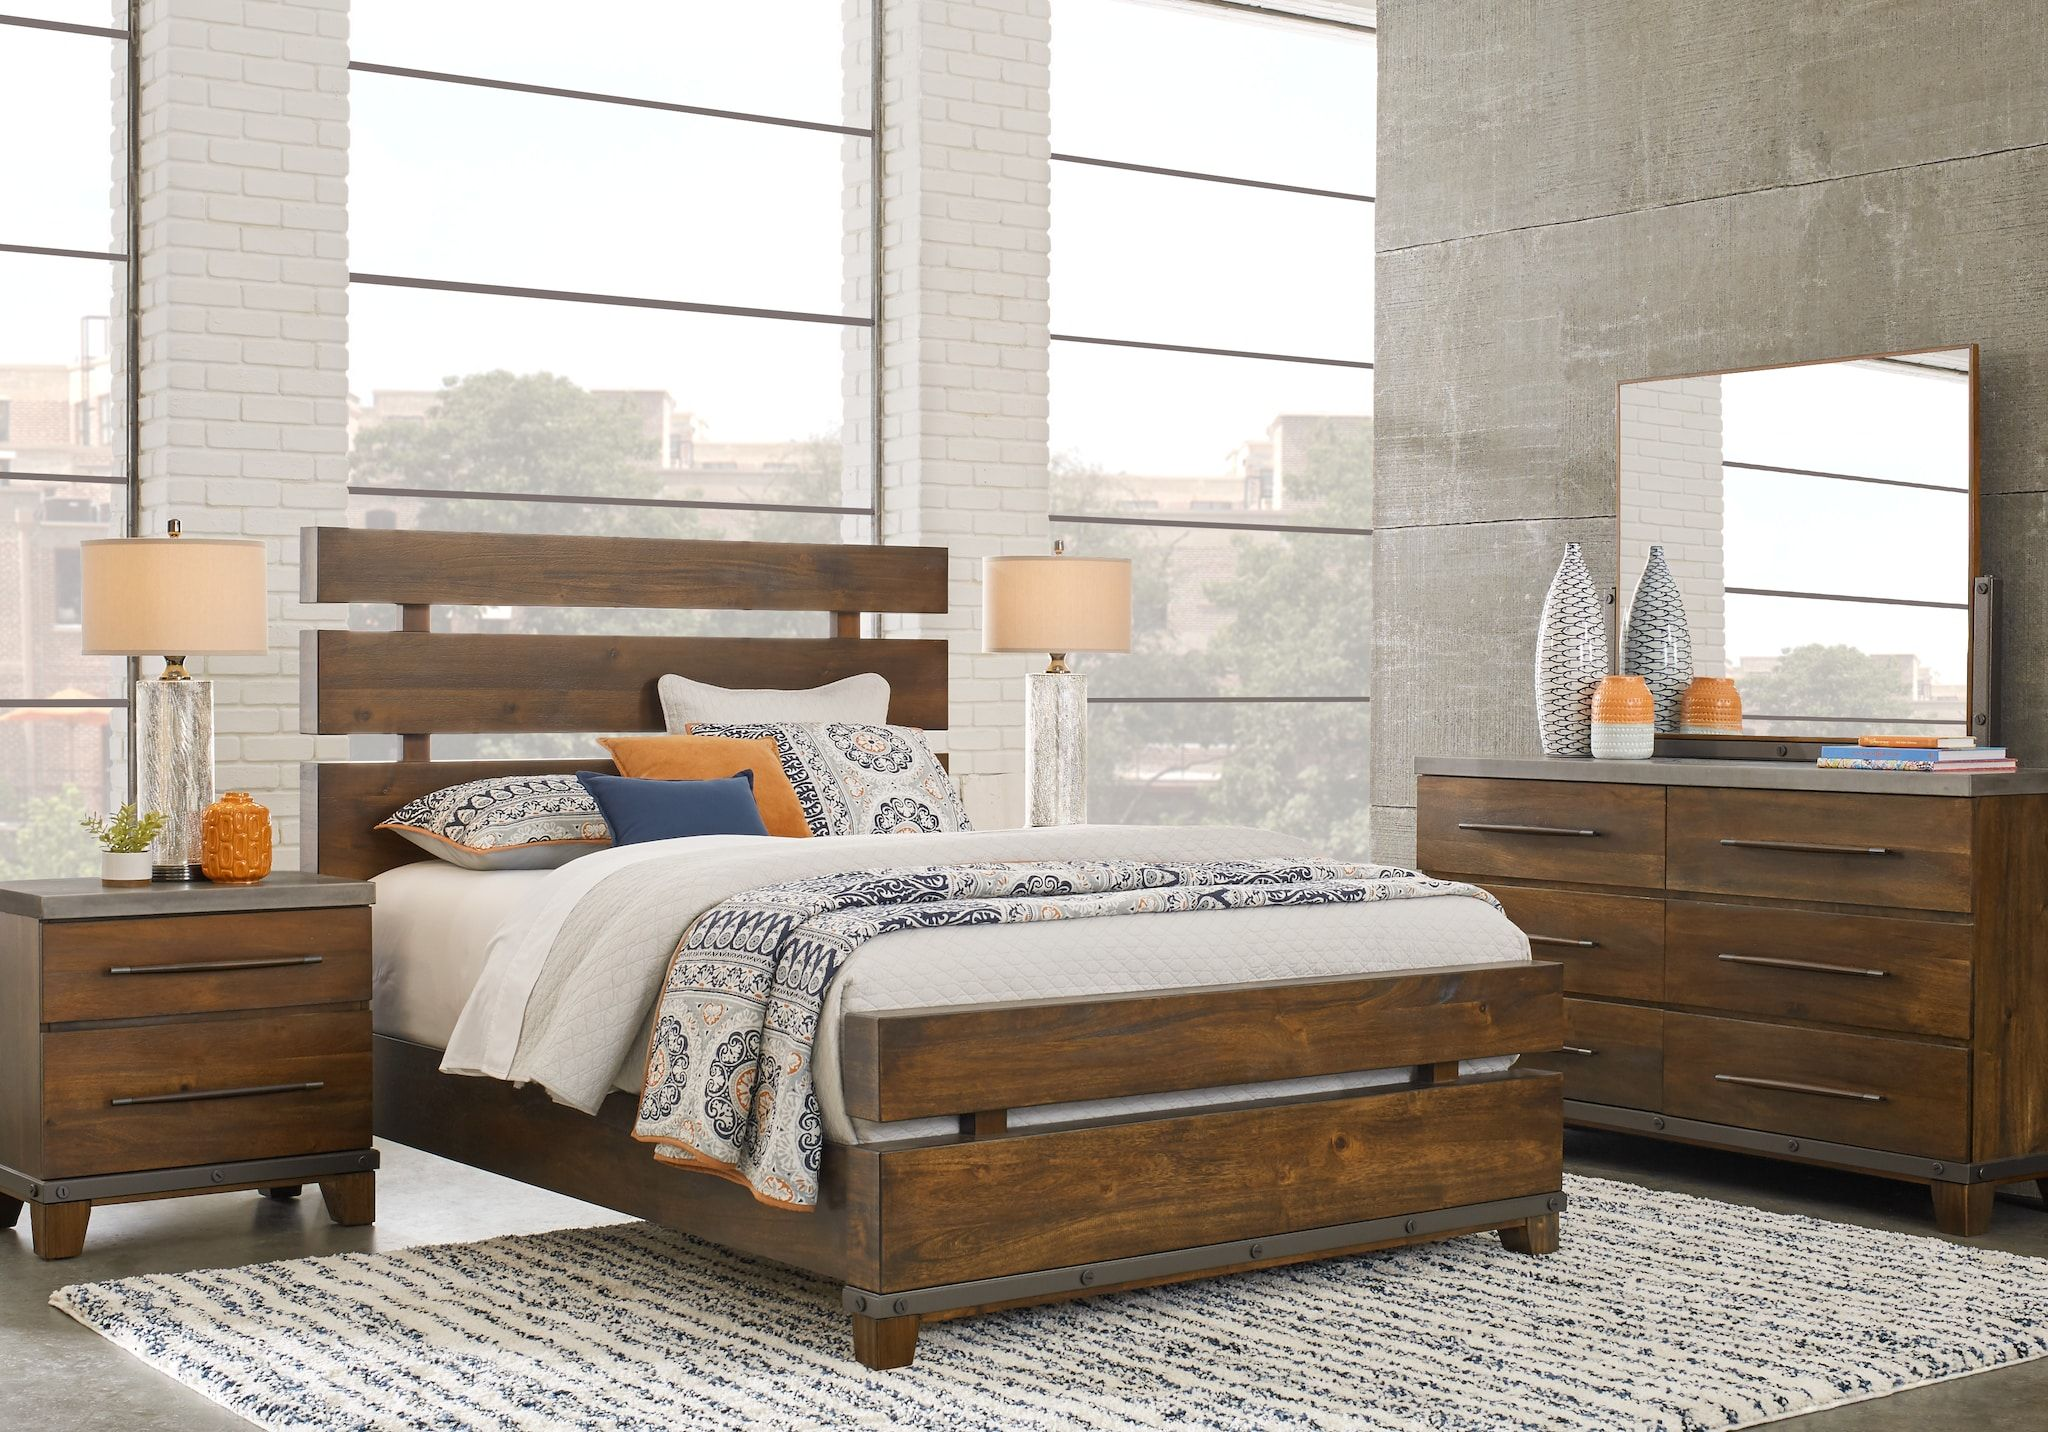 king size bedroom sets suites for sale bedroom ideas in 2019 rh pinterest com